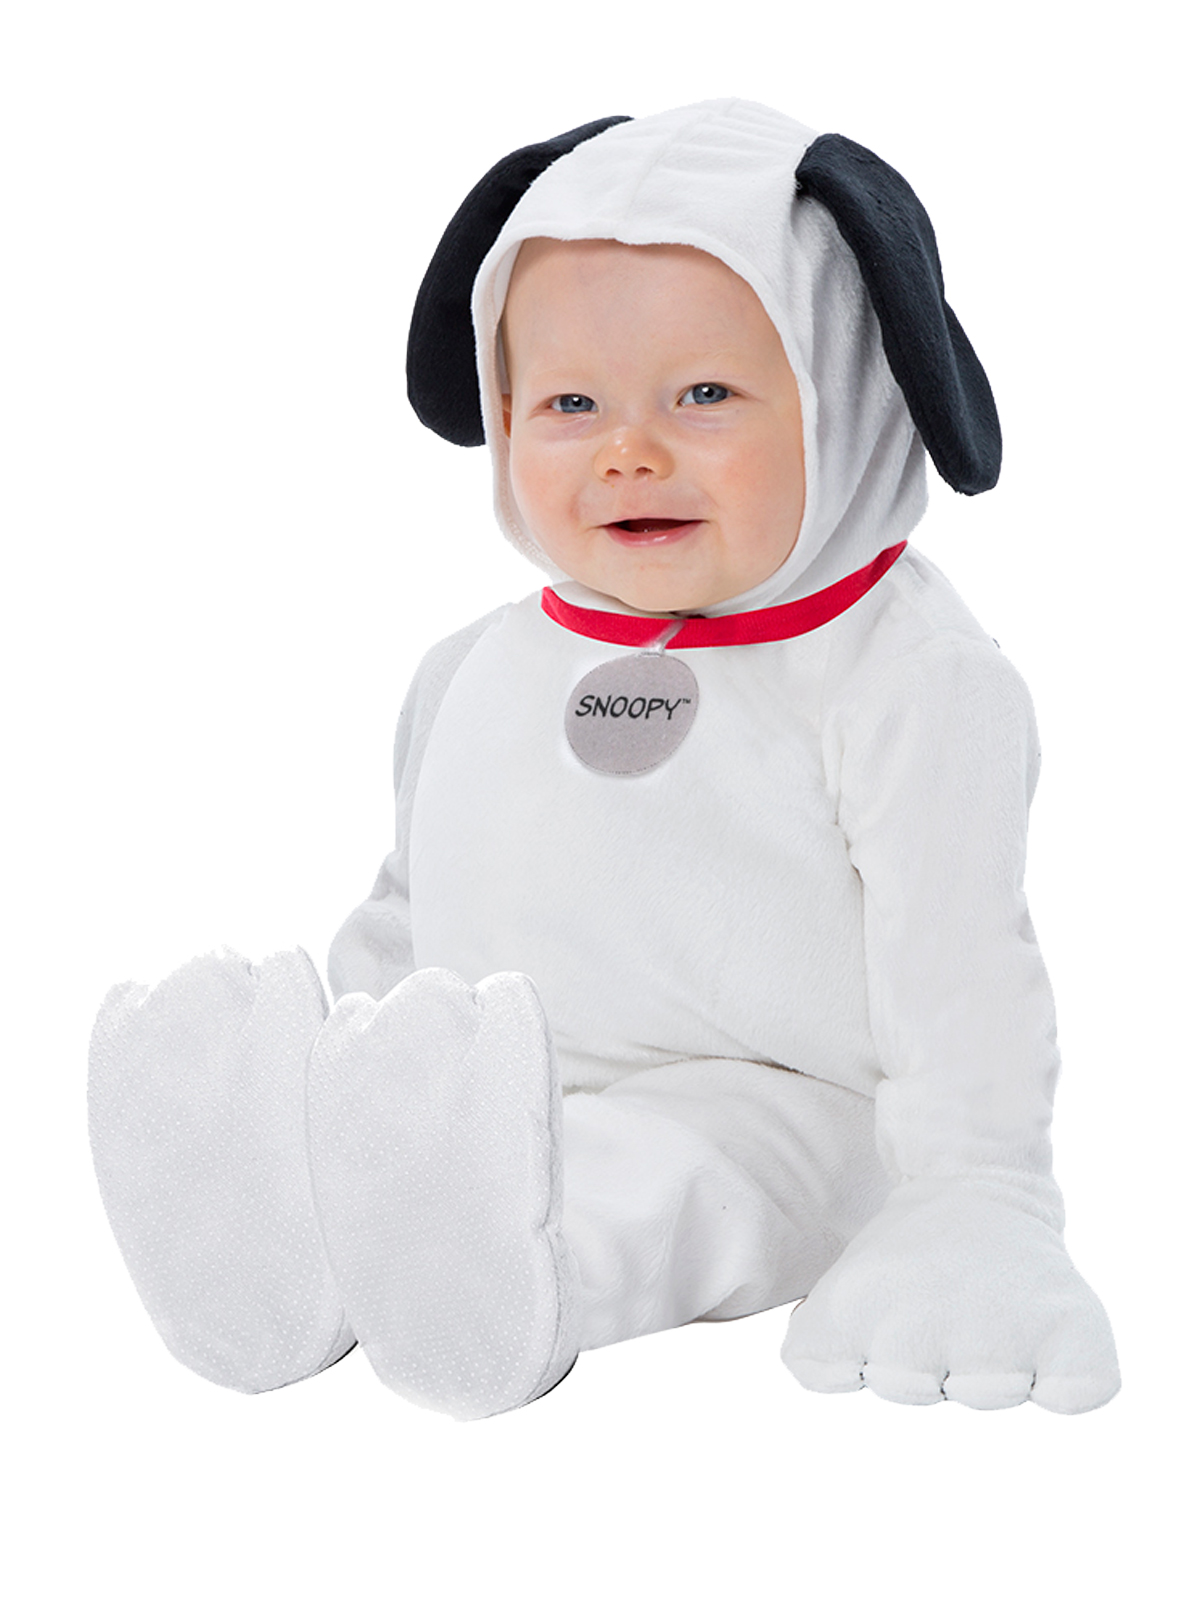 Peanuts Plush Toddler Snoopy Jumpsuit Costume